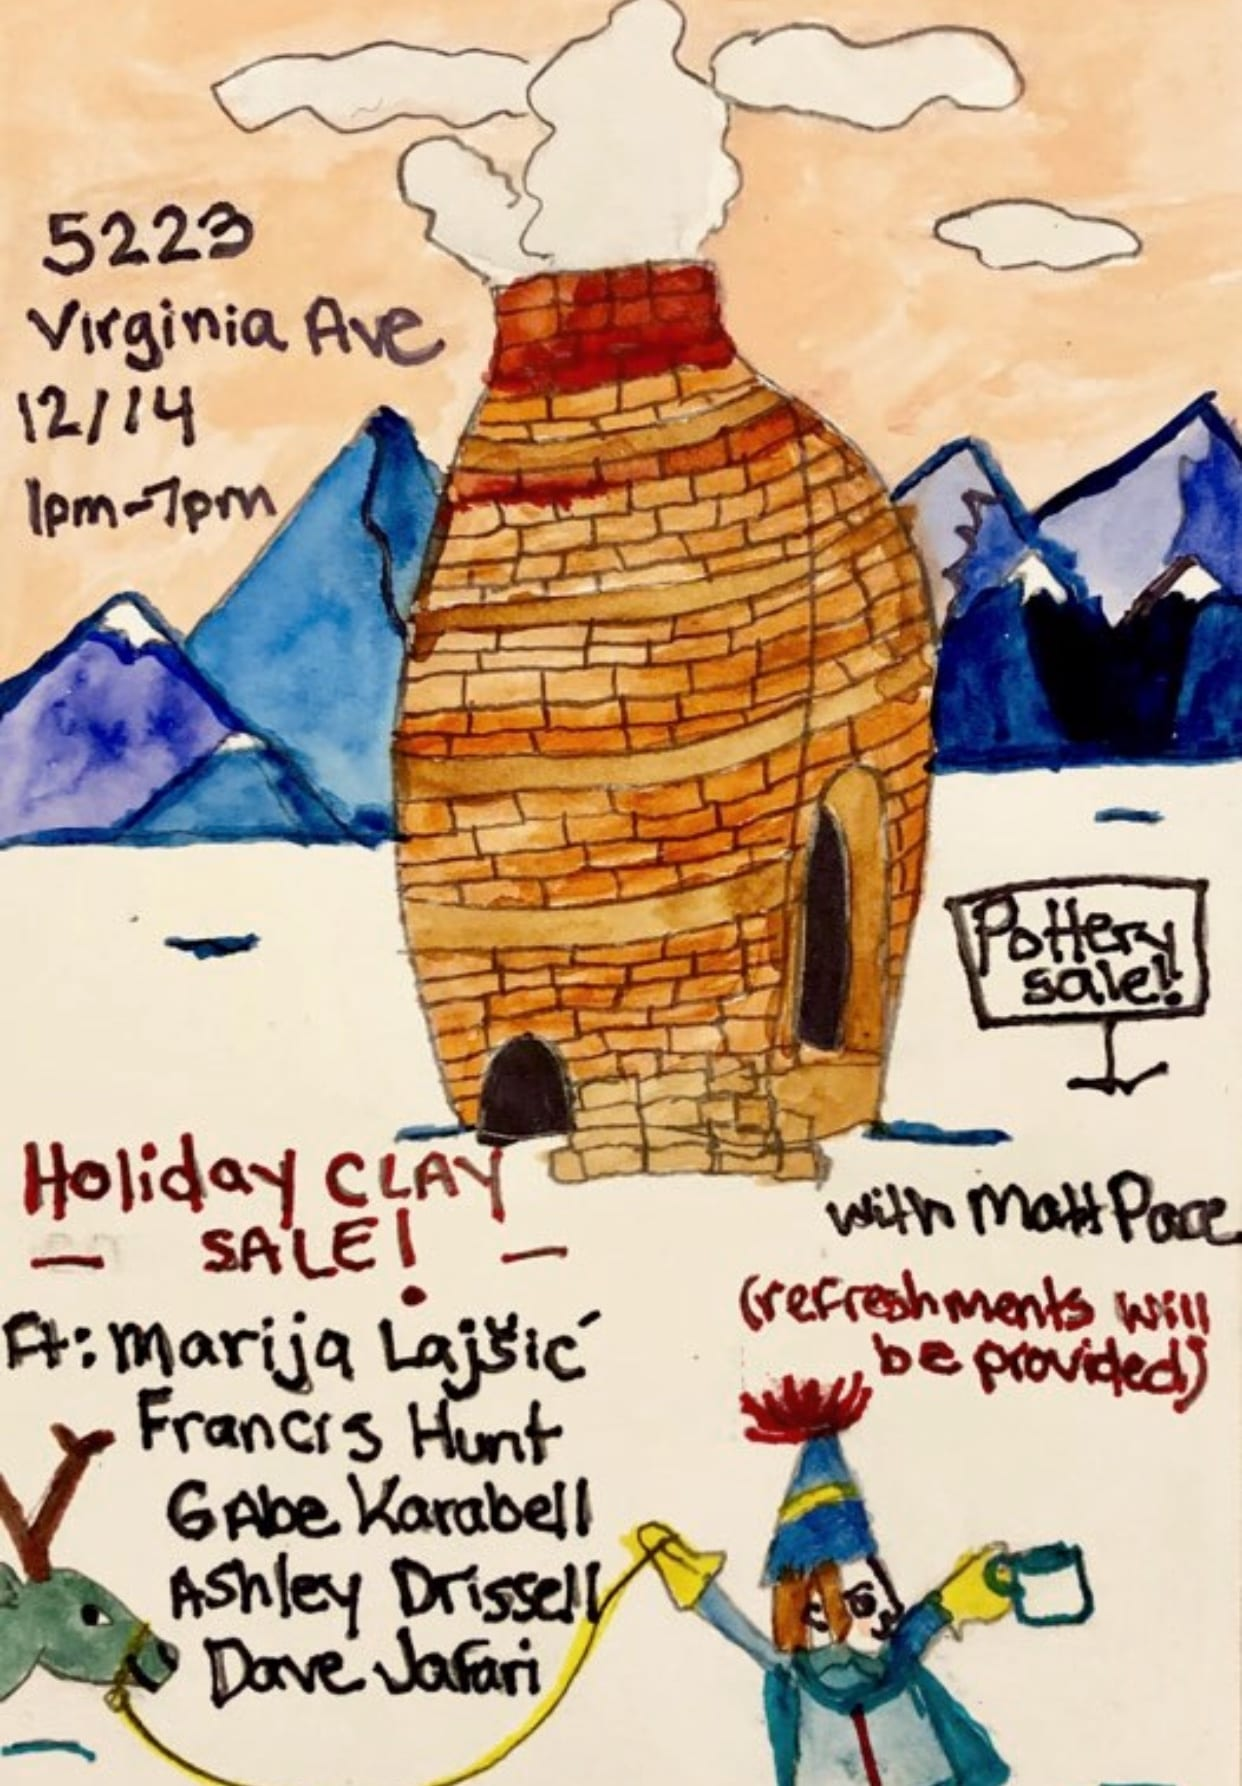 Paul's Pizza annual Holiday Clay Sale.